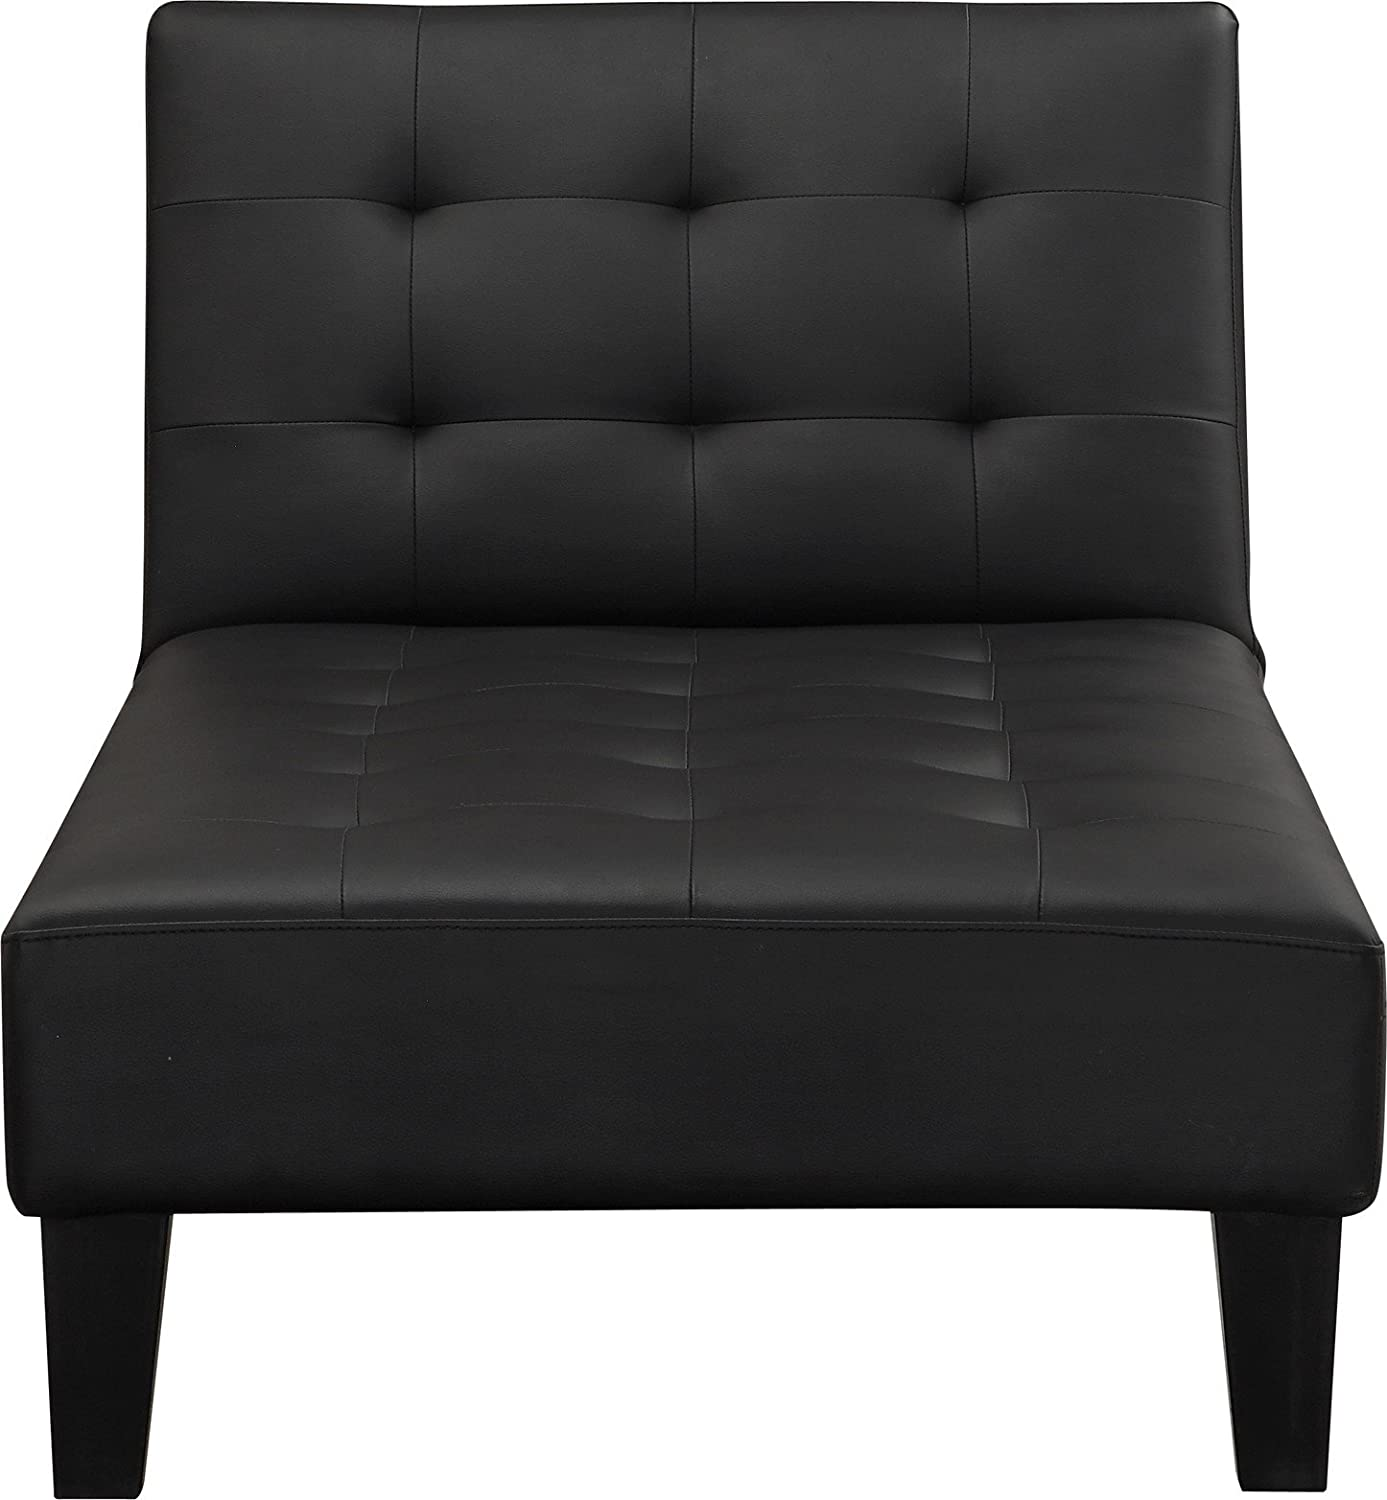 Amazon.com DHP Julia Chaise Lounger Converts to Sleeper Black Faux Leather Kitchen u0026 Dining  sc 1 st  Amazon.com : black chaise chair - Sectionals, Sofas & Couches